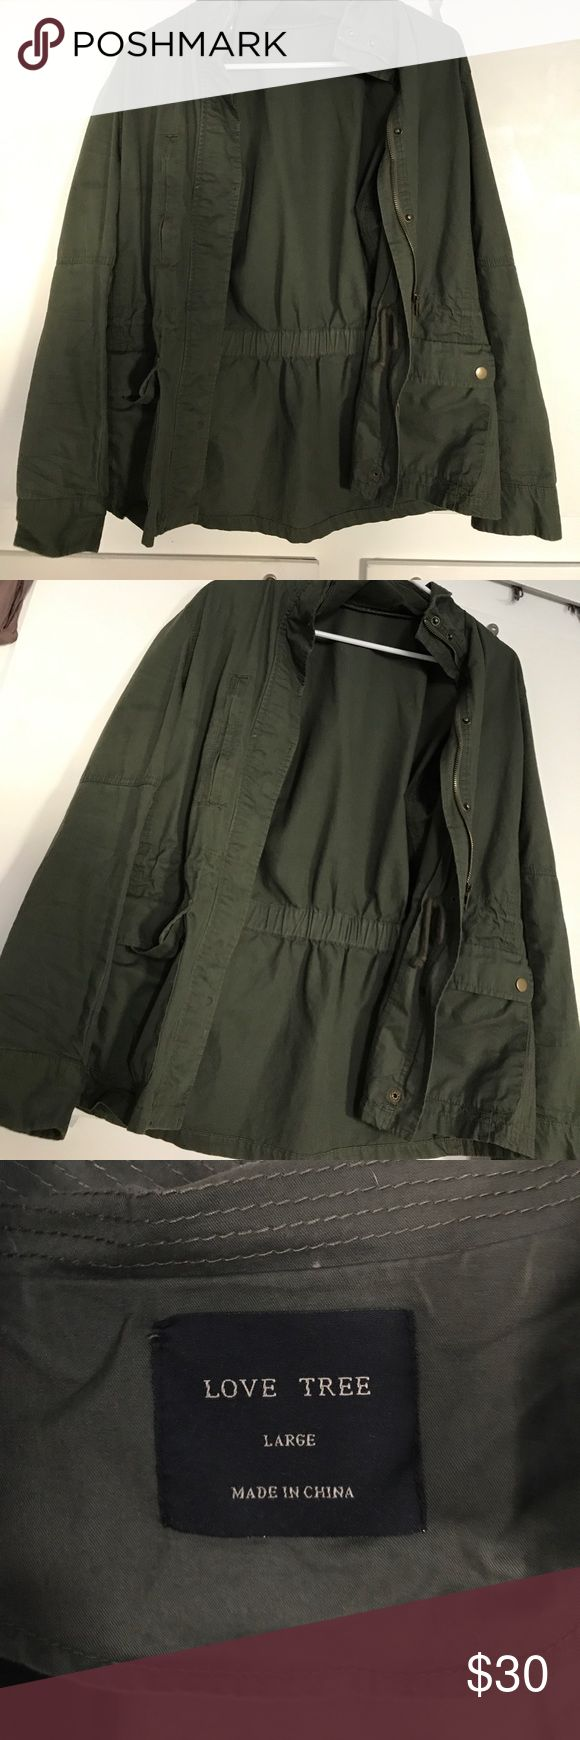 Green Military Jacket Women's Large. In perfect condition. True to size. Jackets & Coats Jean Jackets